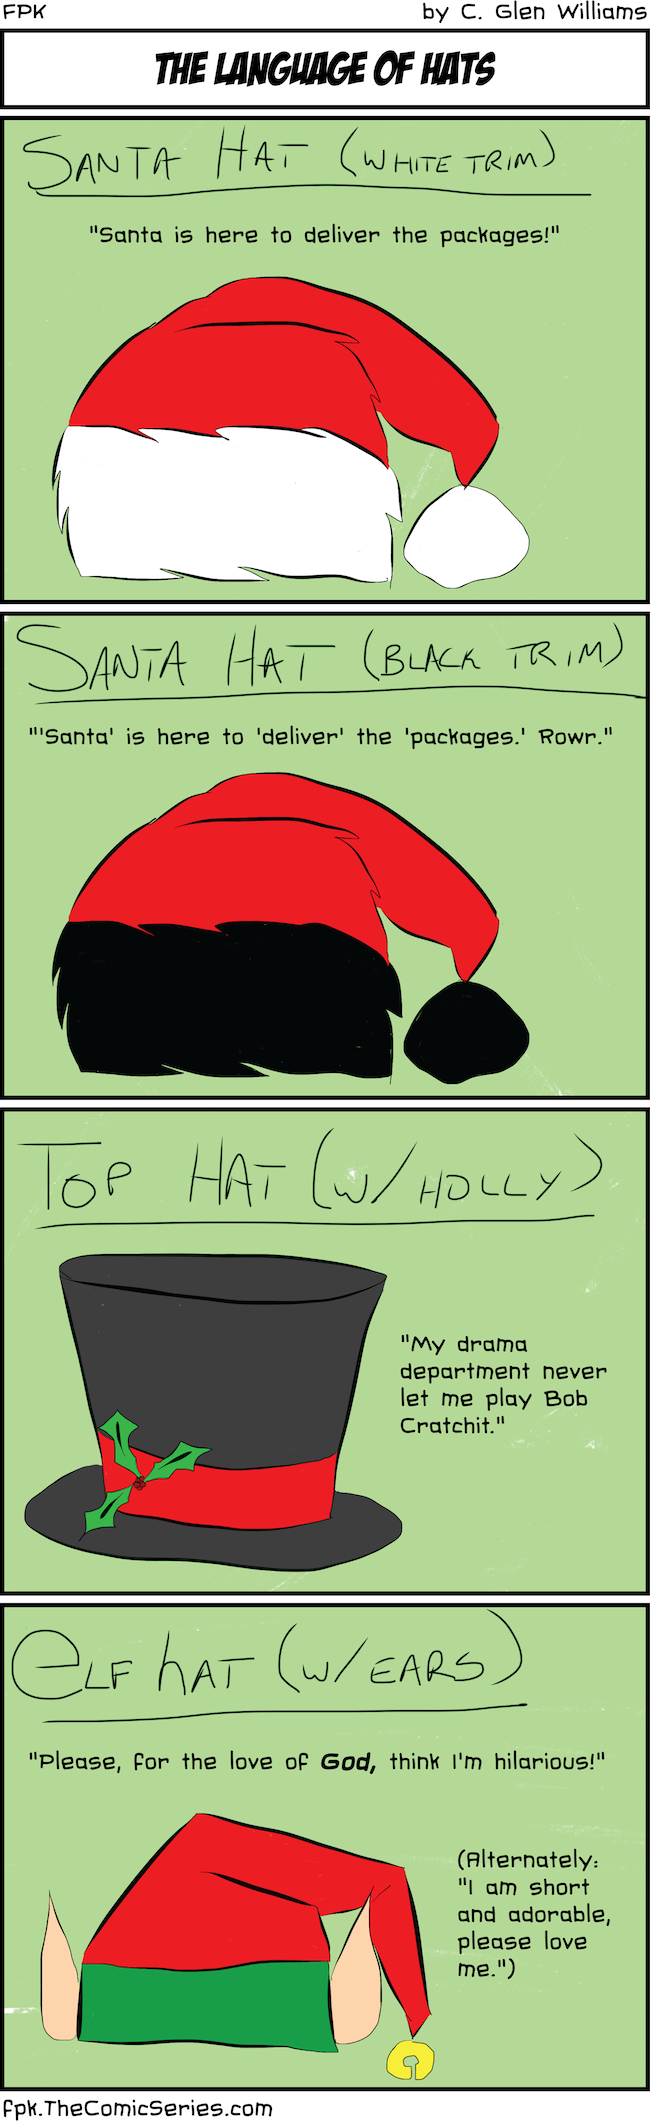 The Language of Hats